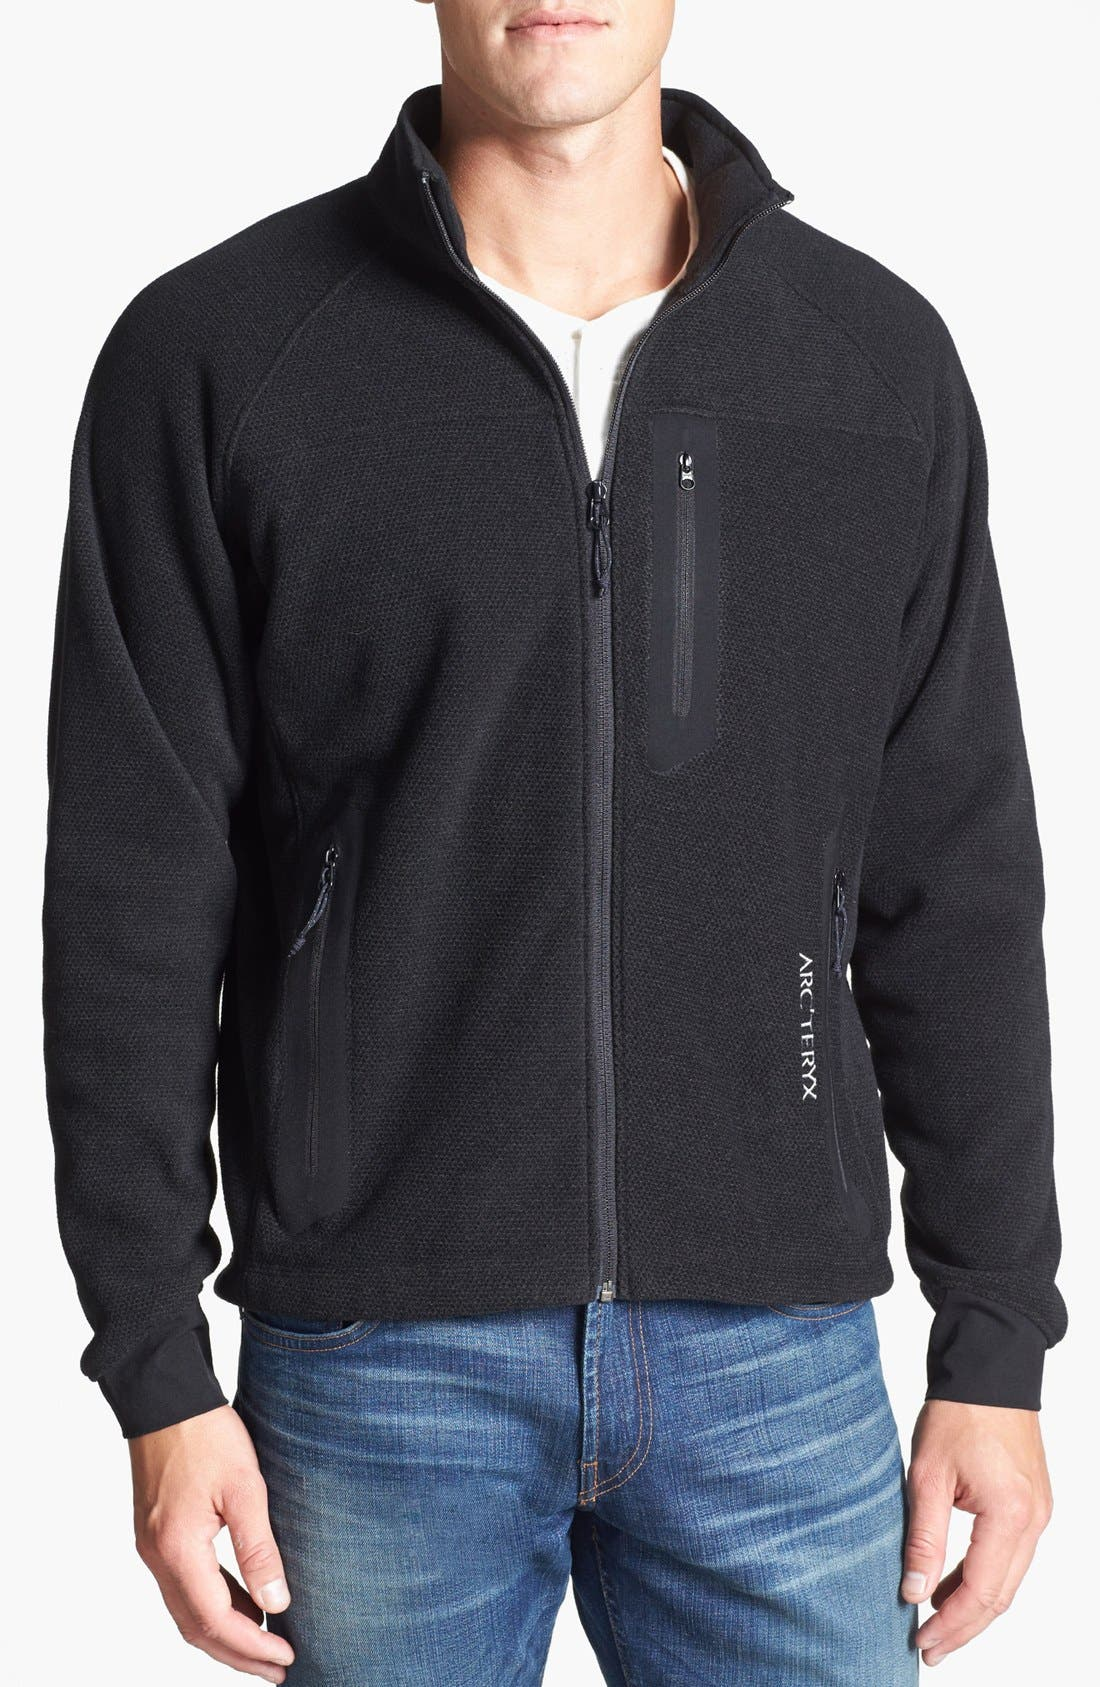 Alternate Image 1 Selected - Arc'teryx 'Strato' Water Repellent Jacket